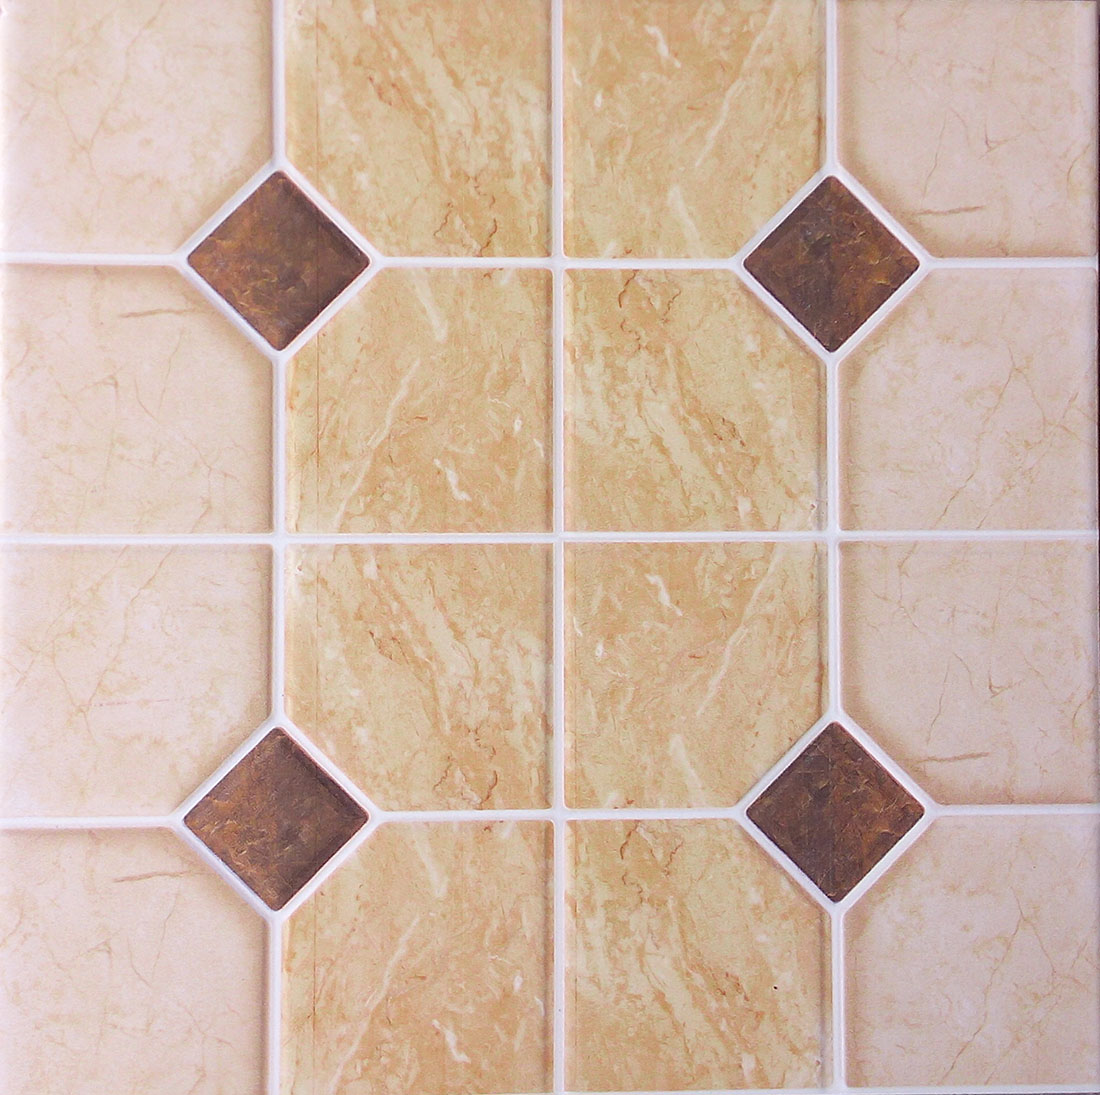 Astounding 30 X 30 Kitchen And Bathroom Floor Tile Beutiful Home Inspiration Xortanetmahrainfo